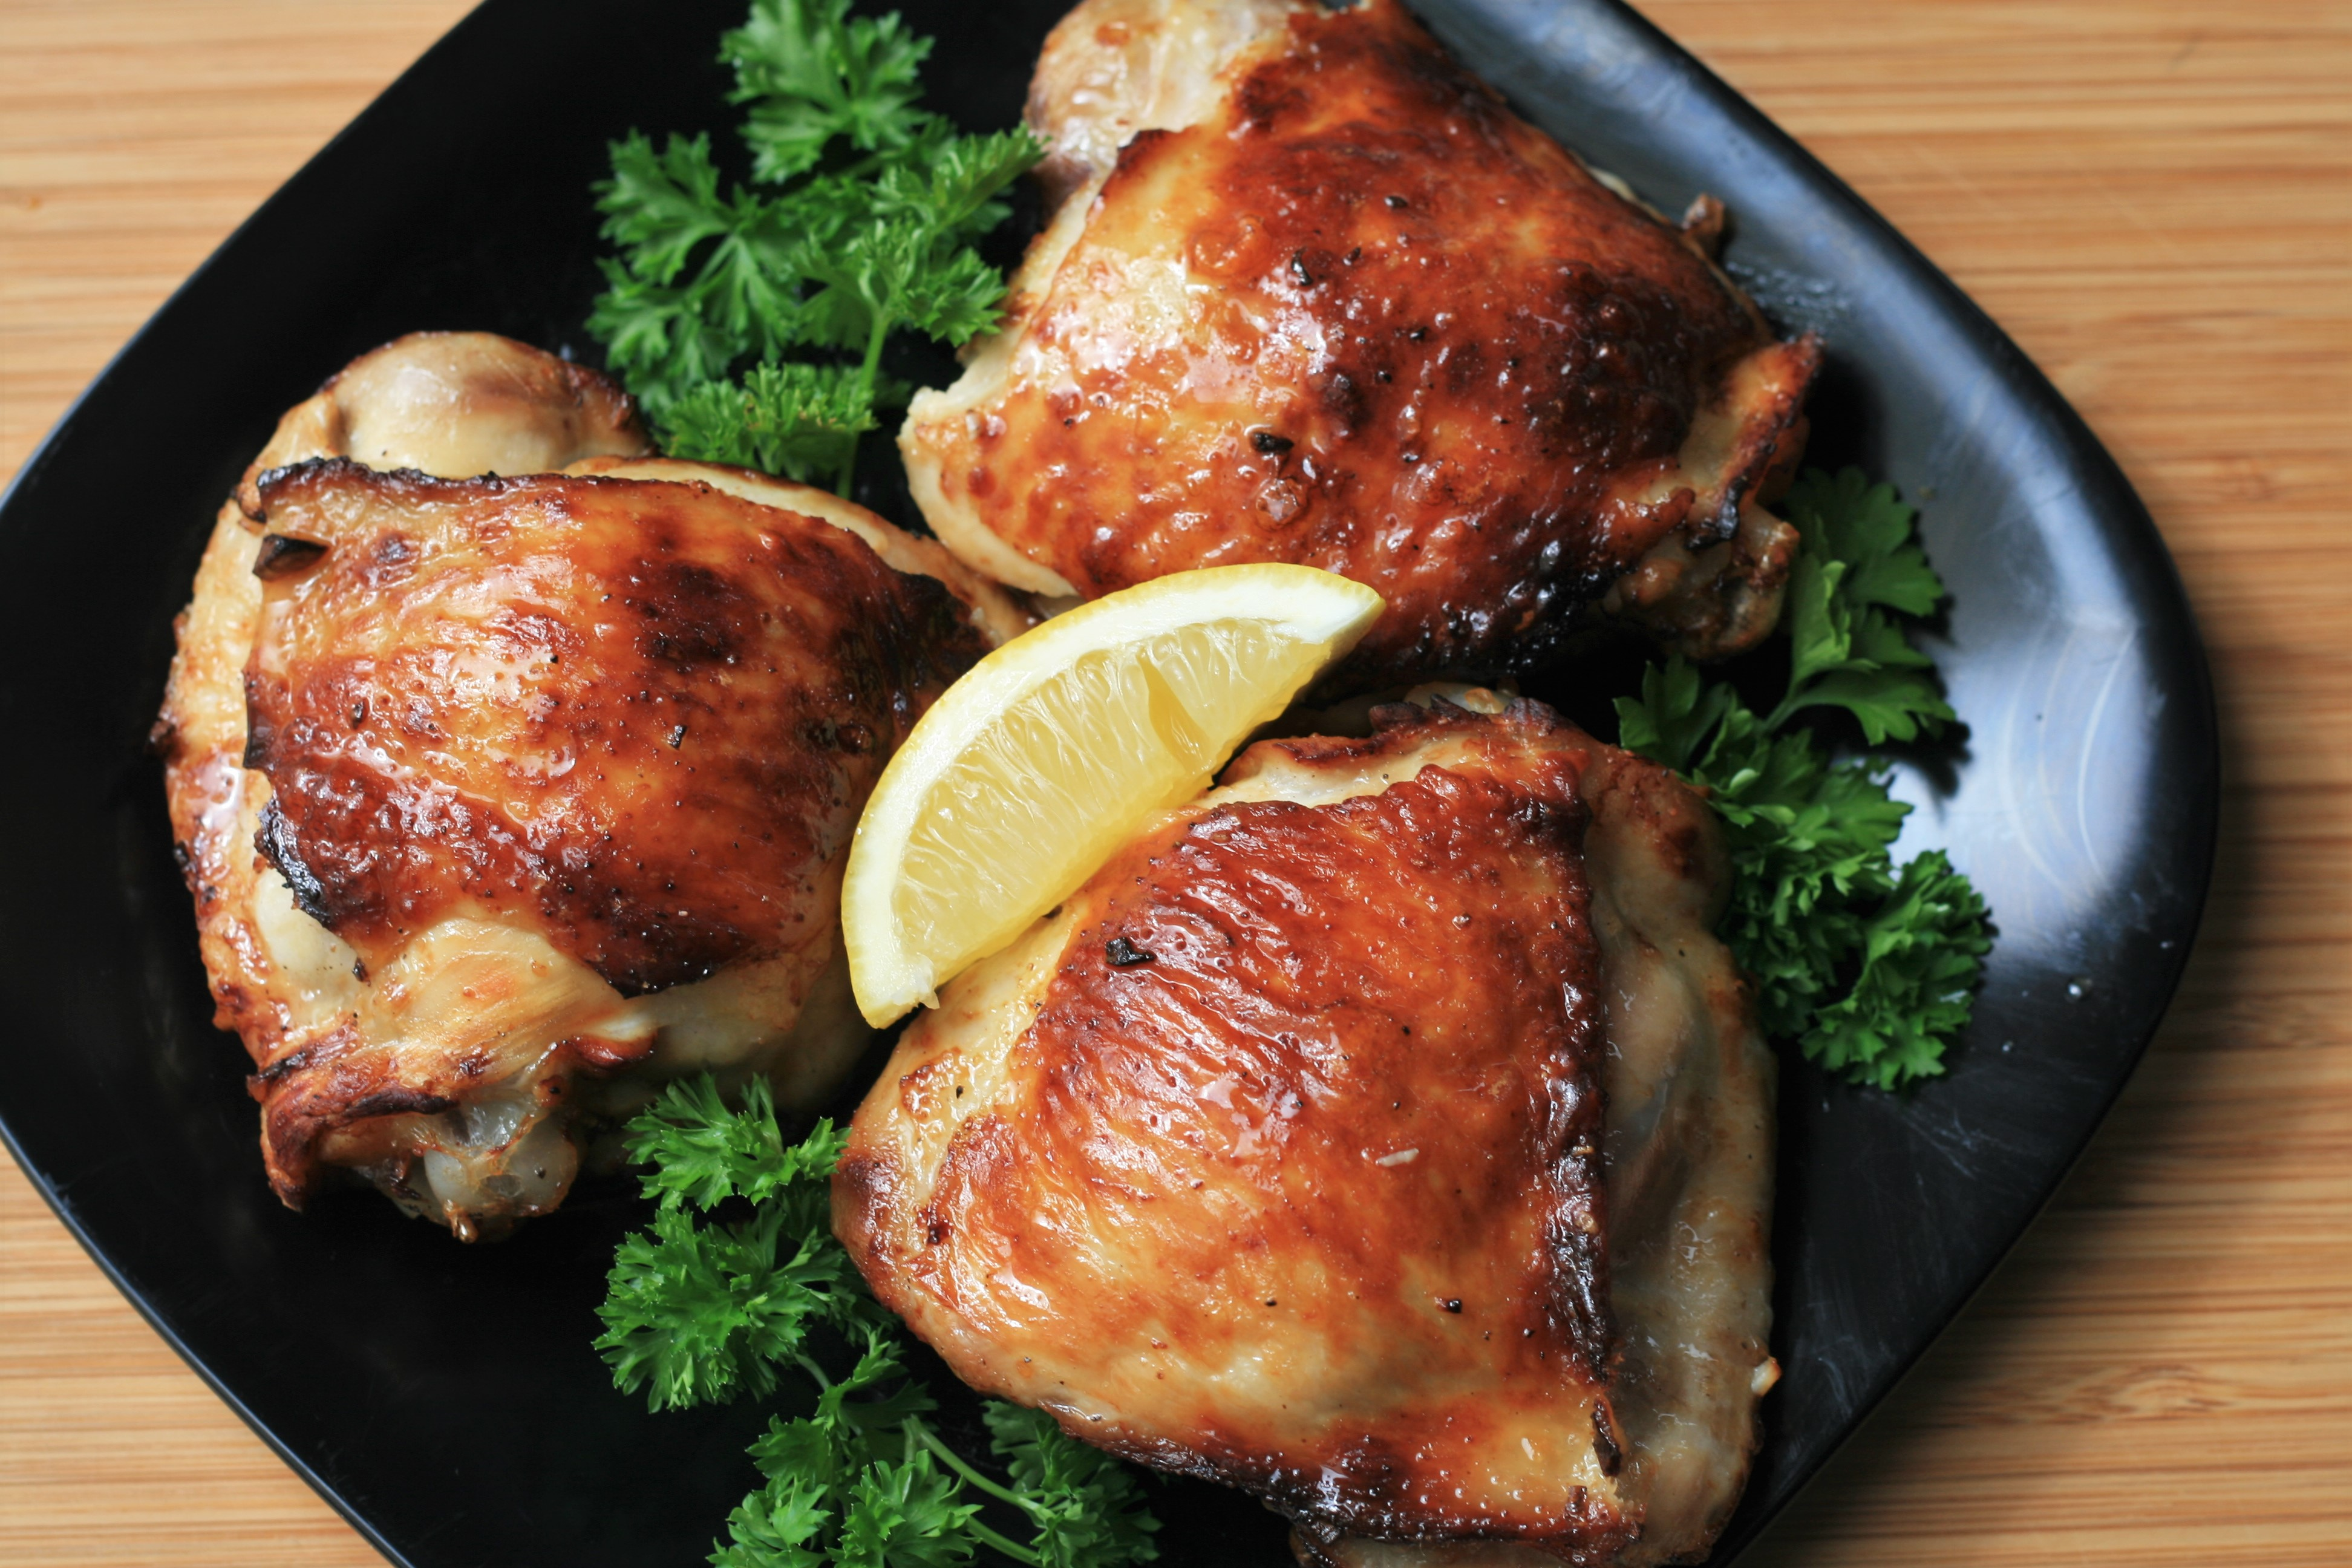 Keto Lemon-Garlic Chicken Thighs in the Air Fryer